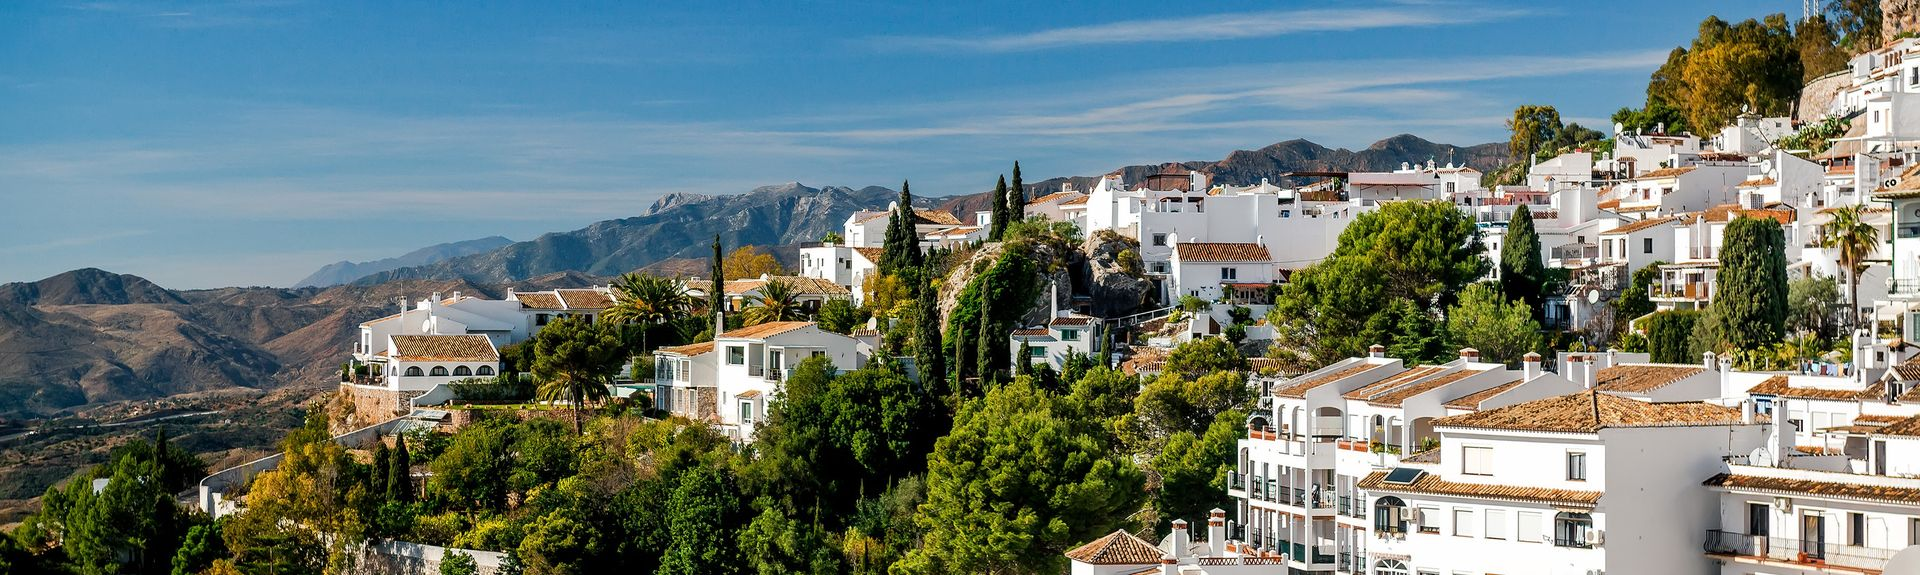 Sitio de Calahonda, Mijas, Spain